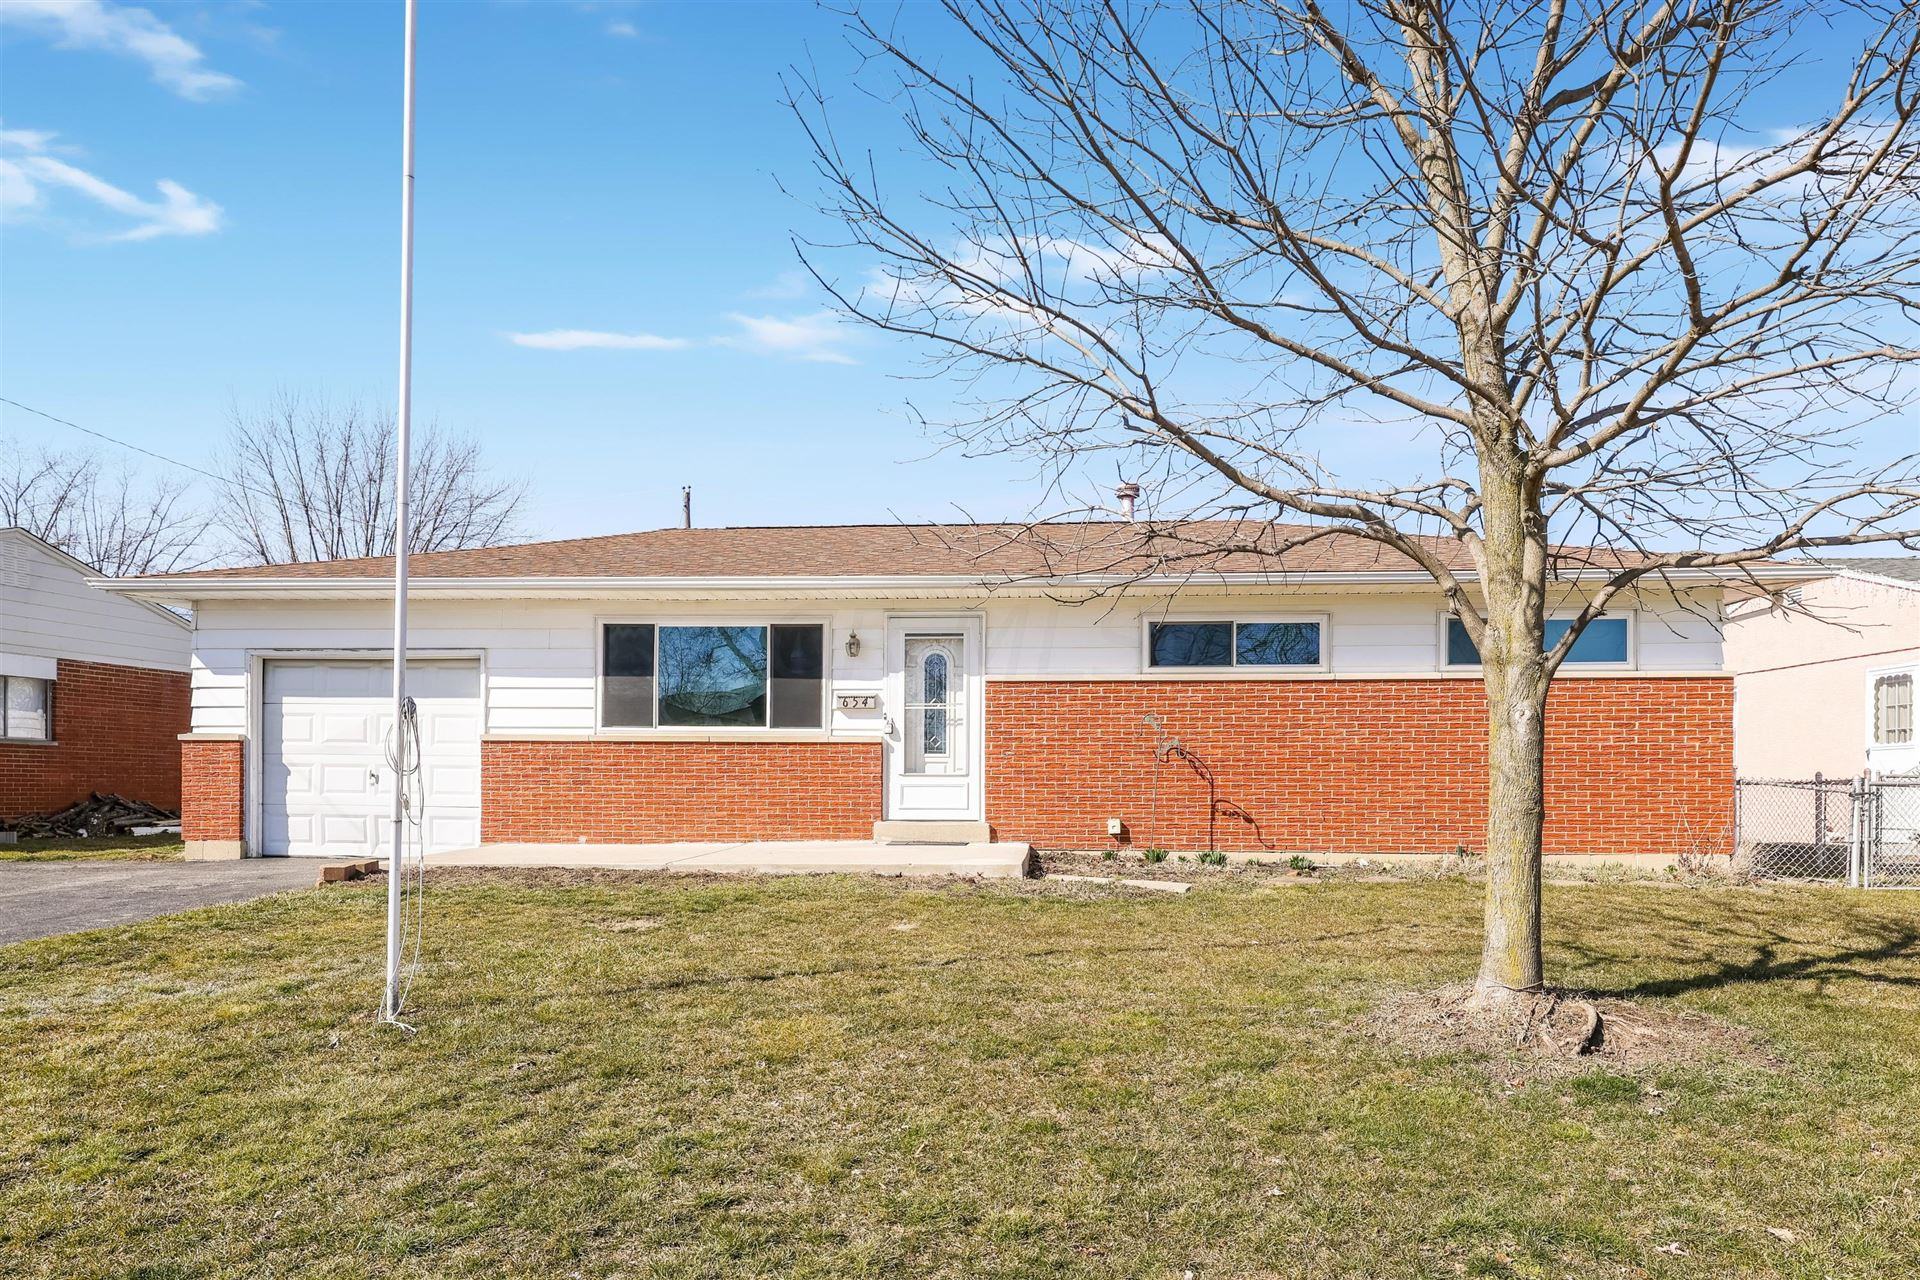 Photo for 654 Hillsdale Drive, West Jefferson, OH 43162 (MLS # 221006349)